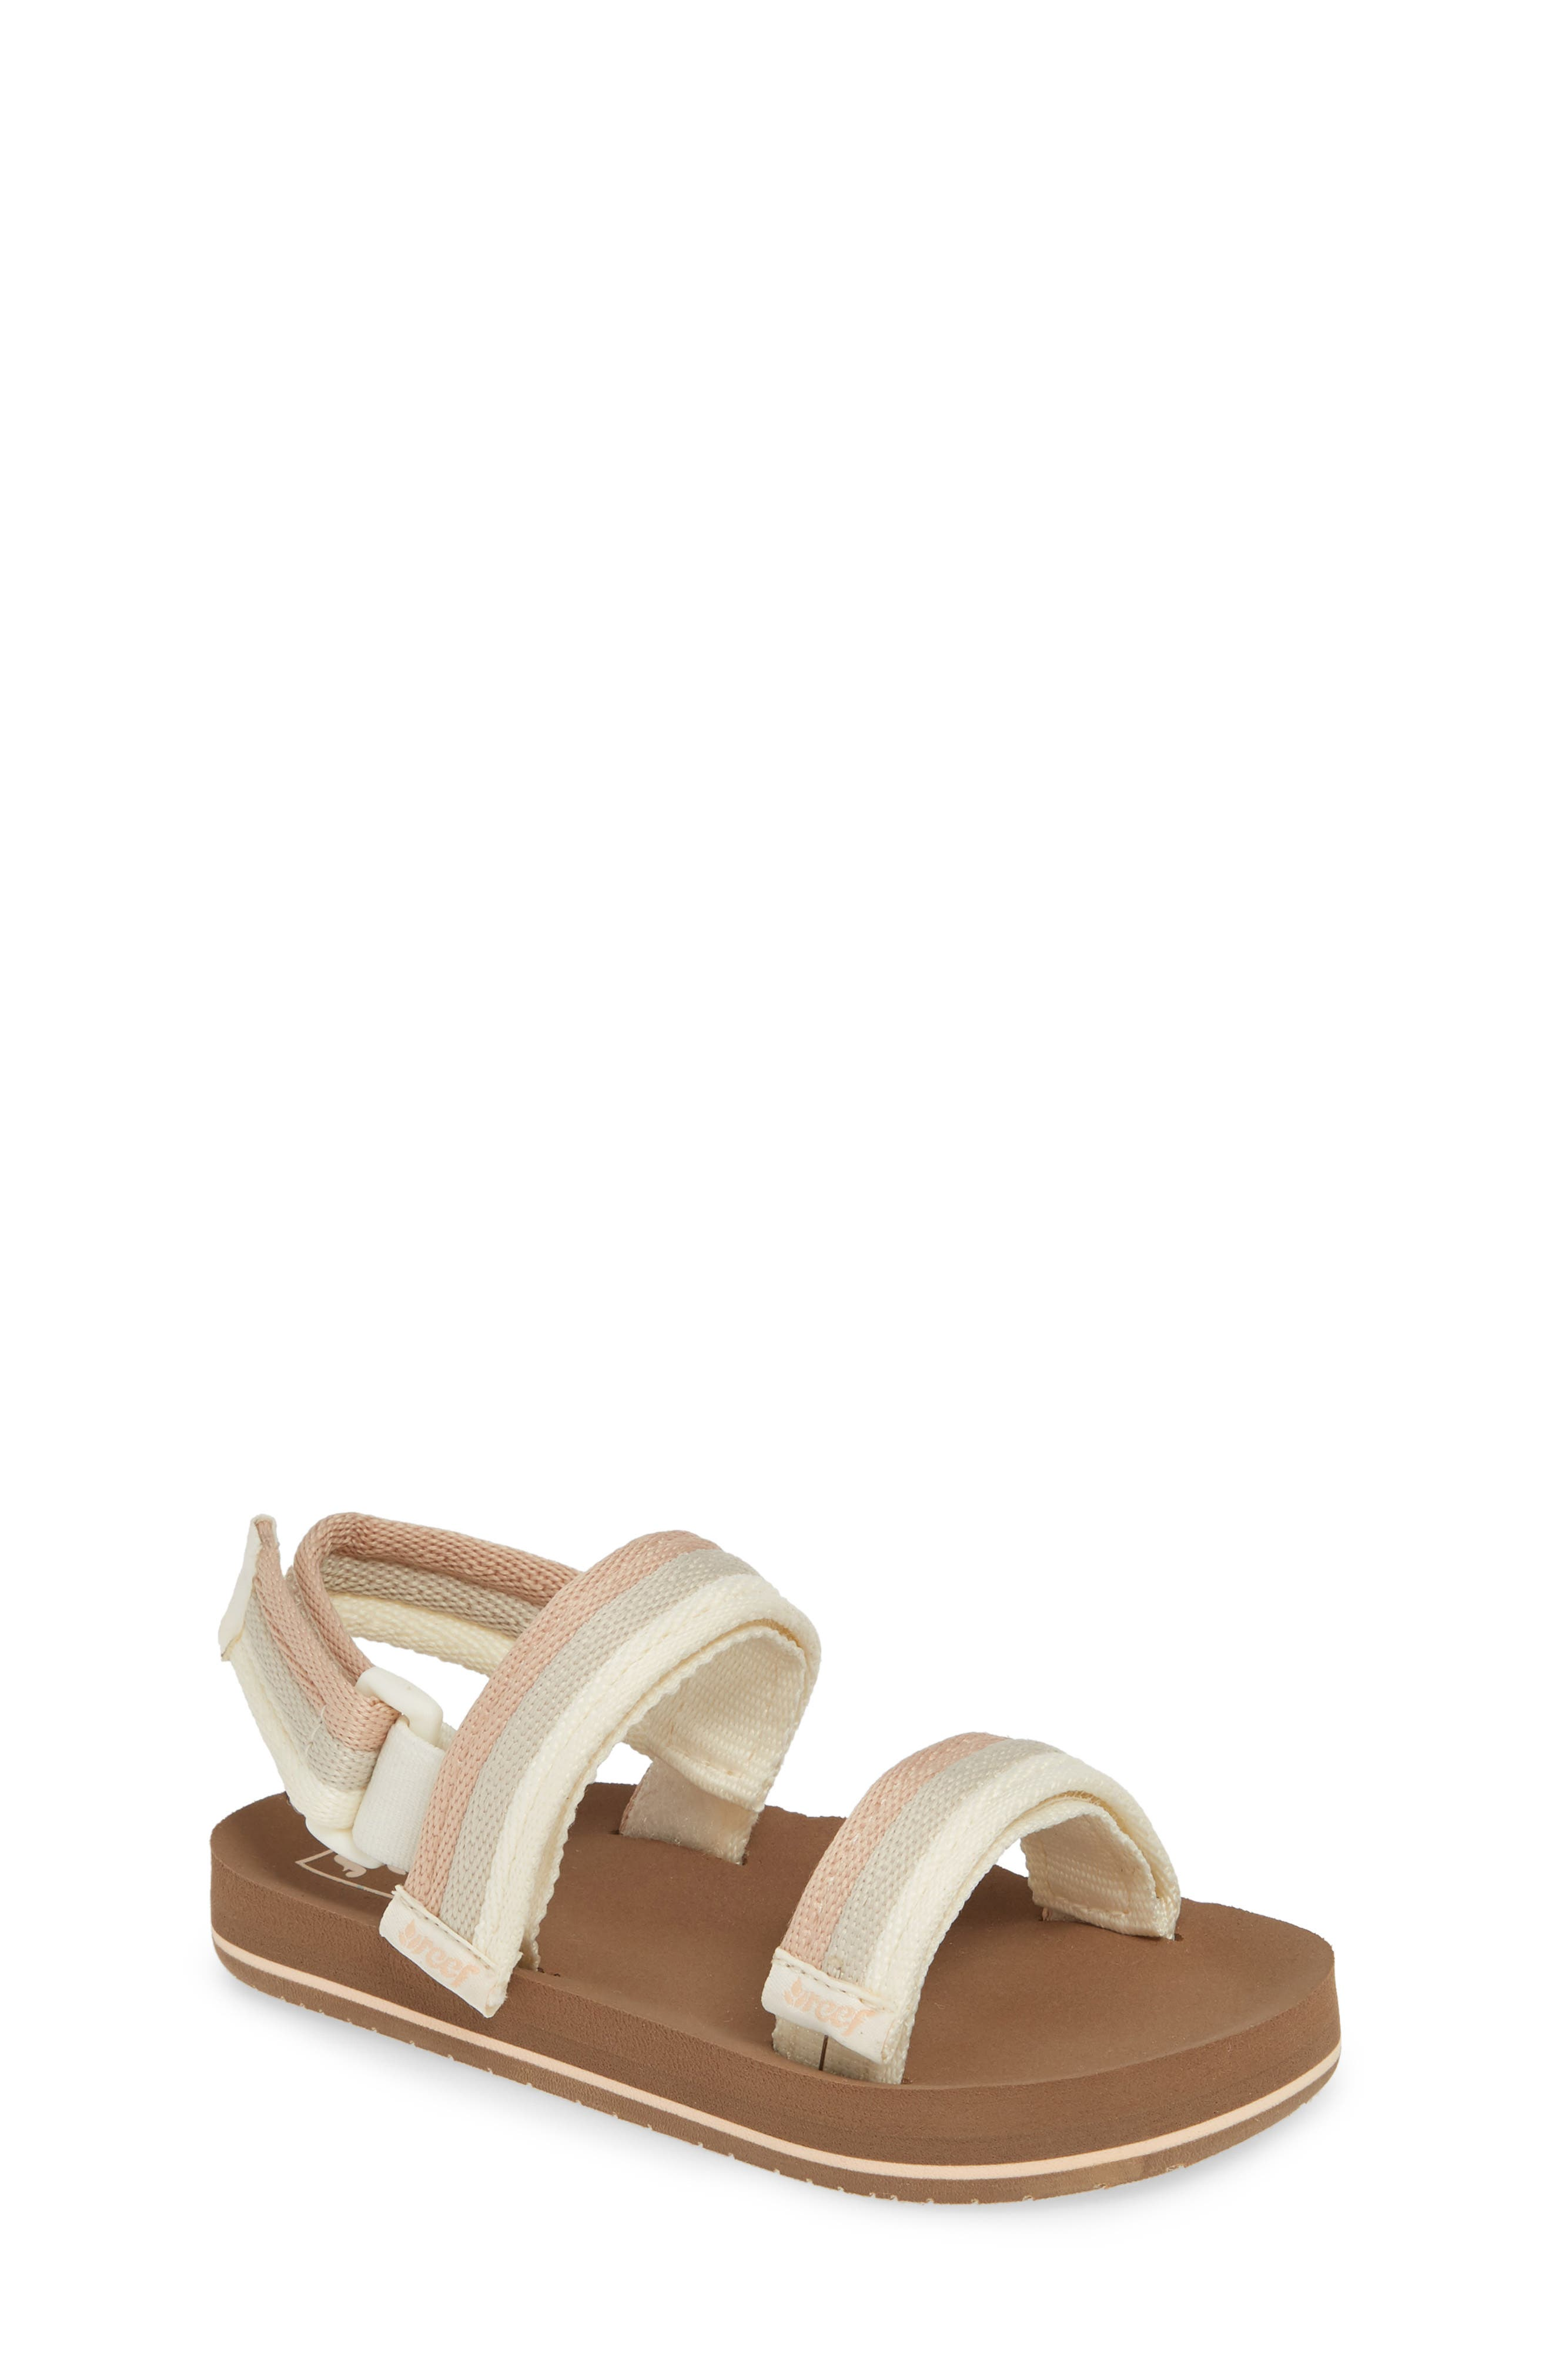 REEF Little Ahi Convertible Sandal, Main, color, SANDY TOES